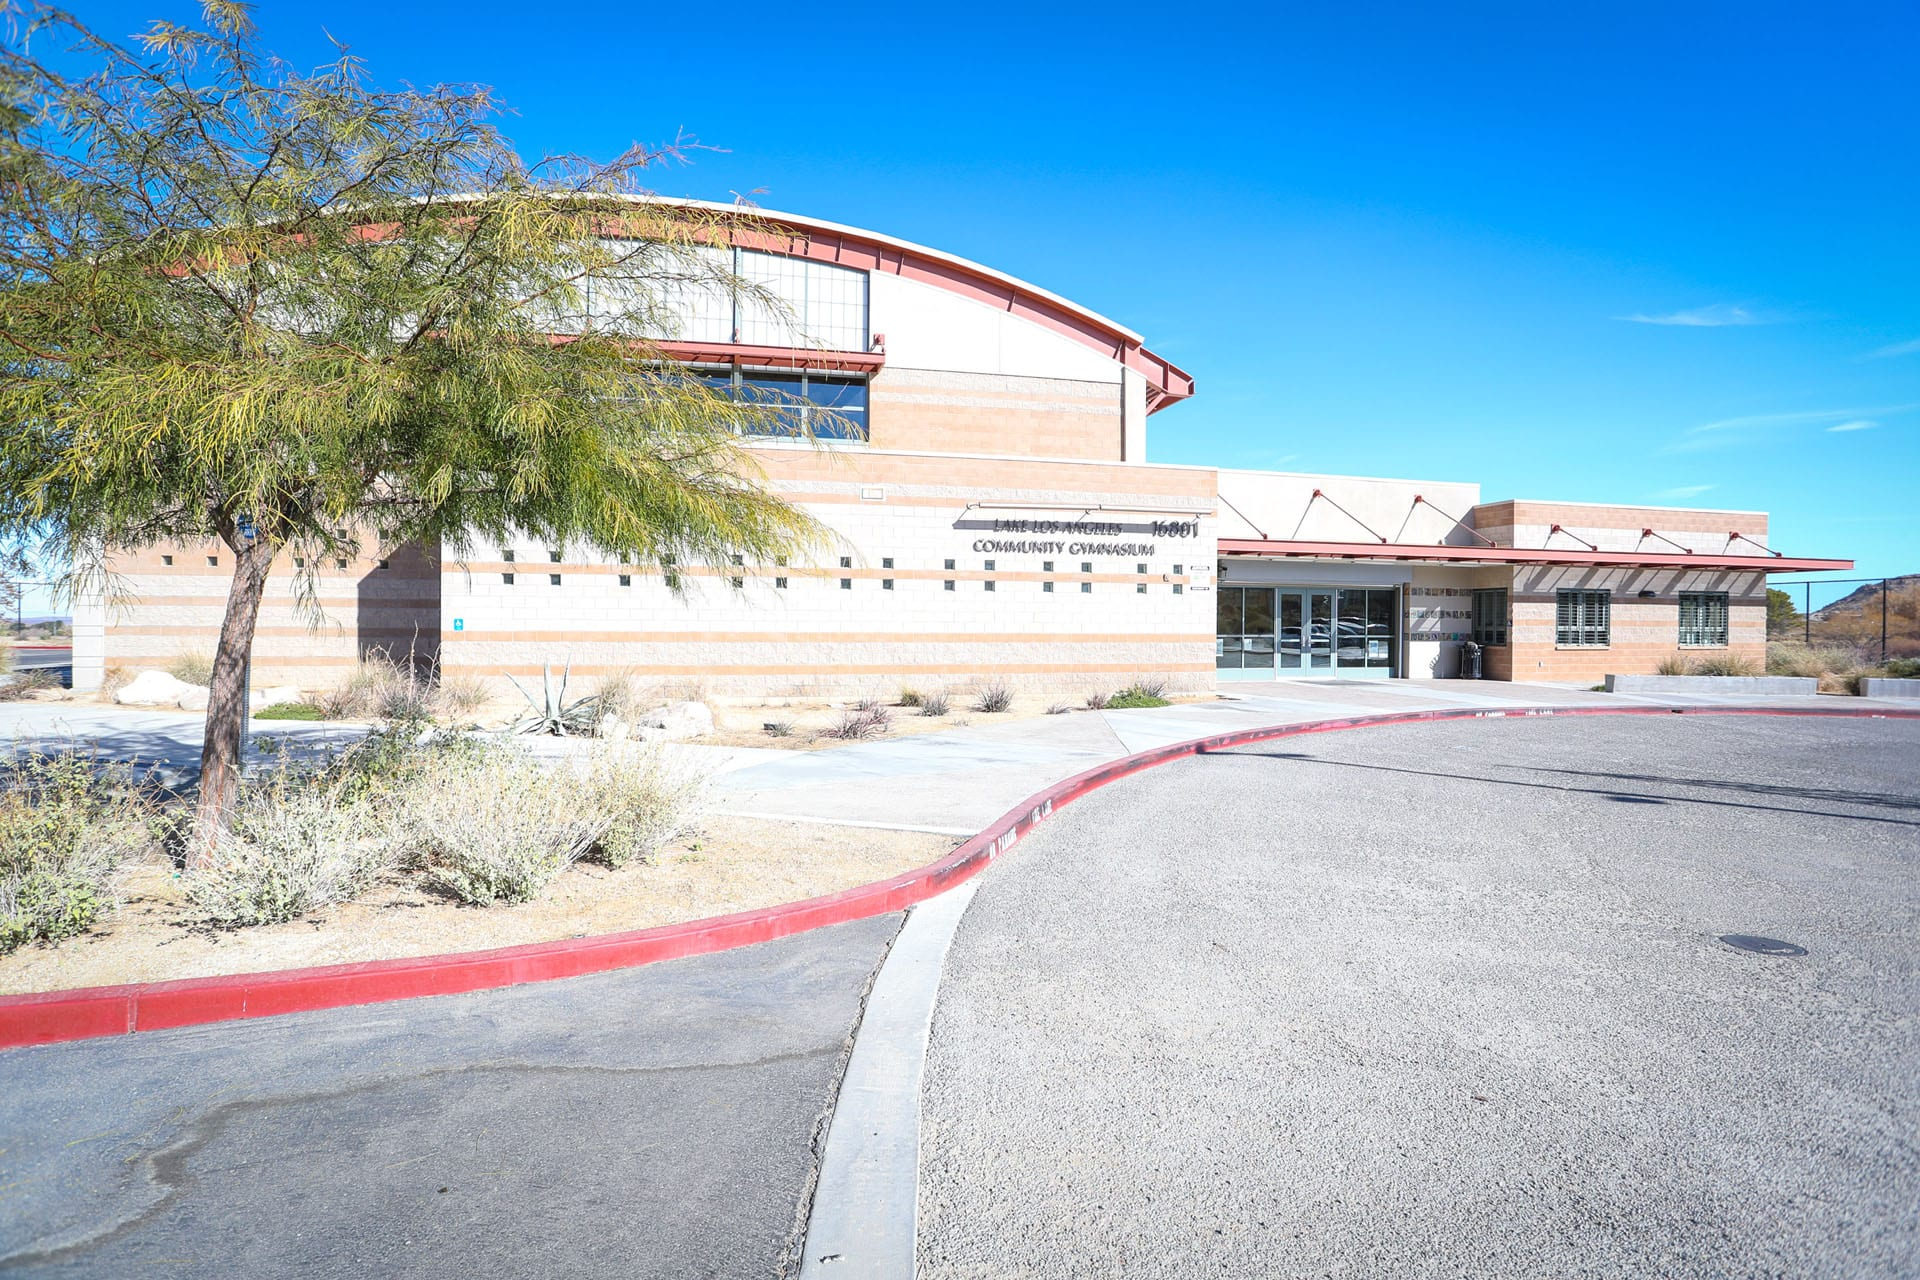 Lake Los Angeles Community Gymnasium